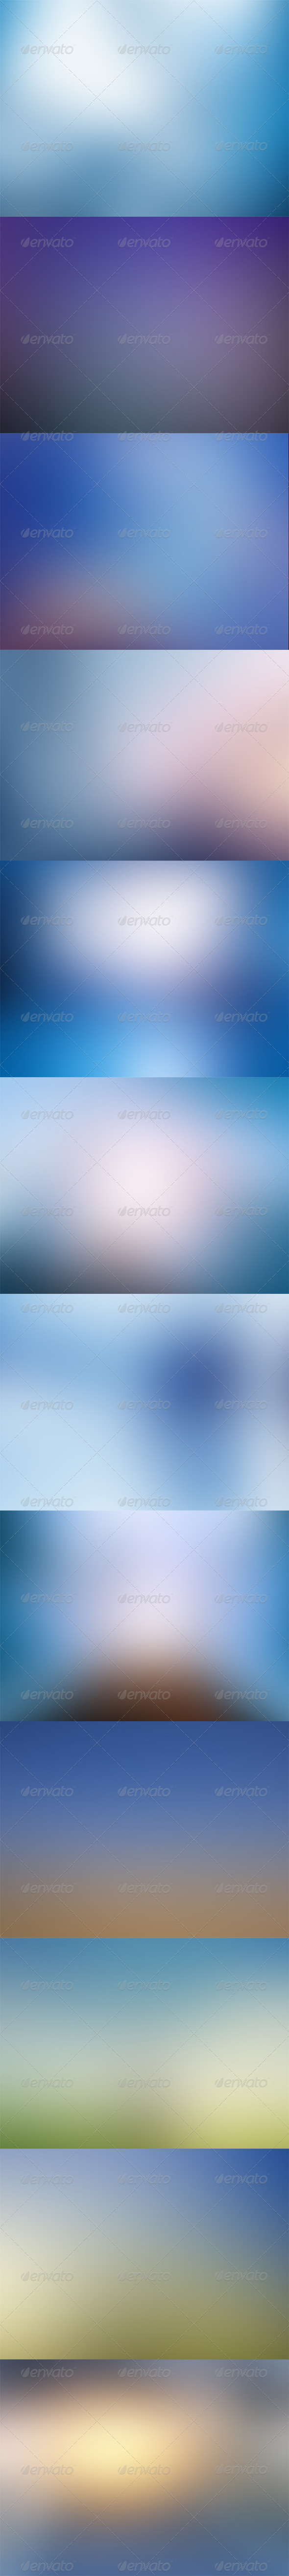 GraphicRiver Blue Blurred Backgrounds 5630447